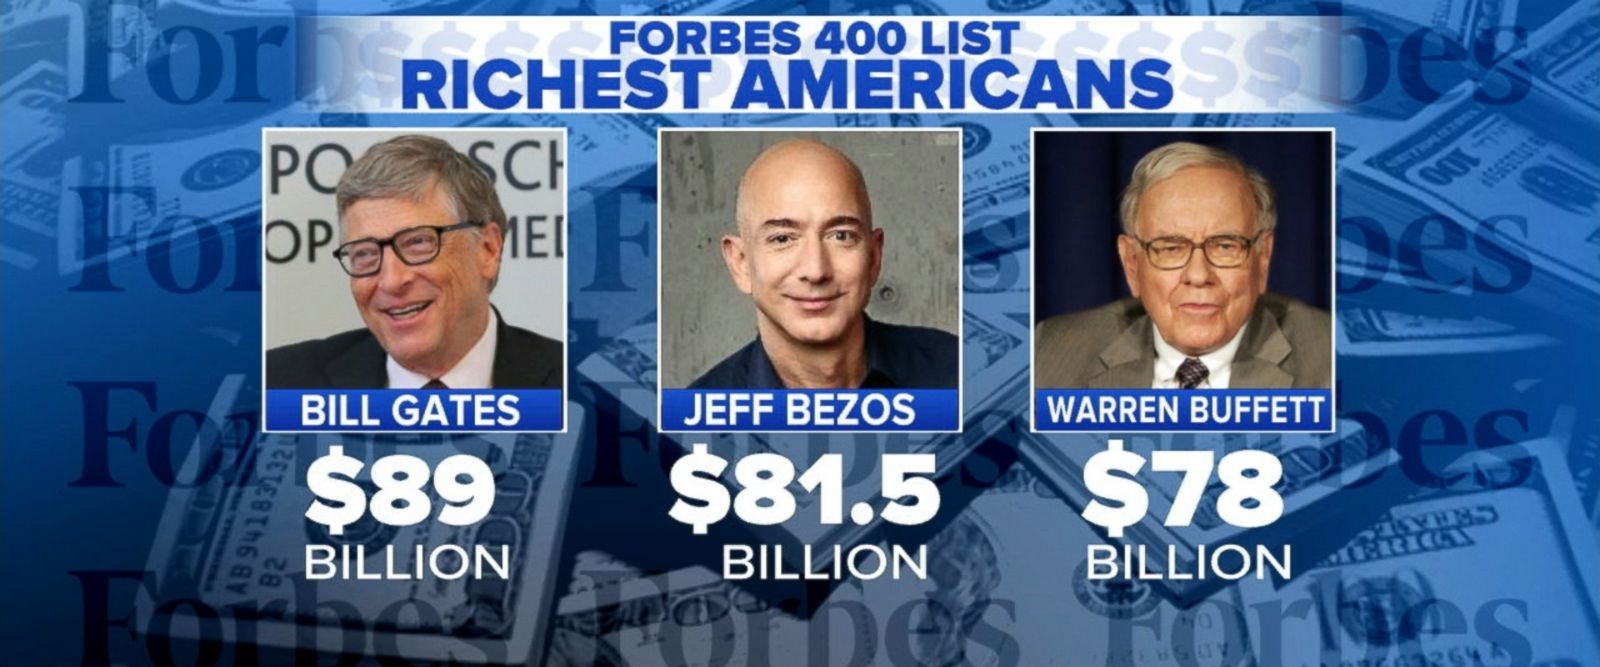 President Donald Trump is not as wealthy as he was last year, according to Forbes magazine, which dropped him 92 spots on its annual list of the 400 wealthiest people in America.